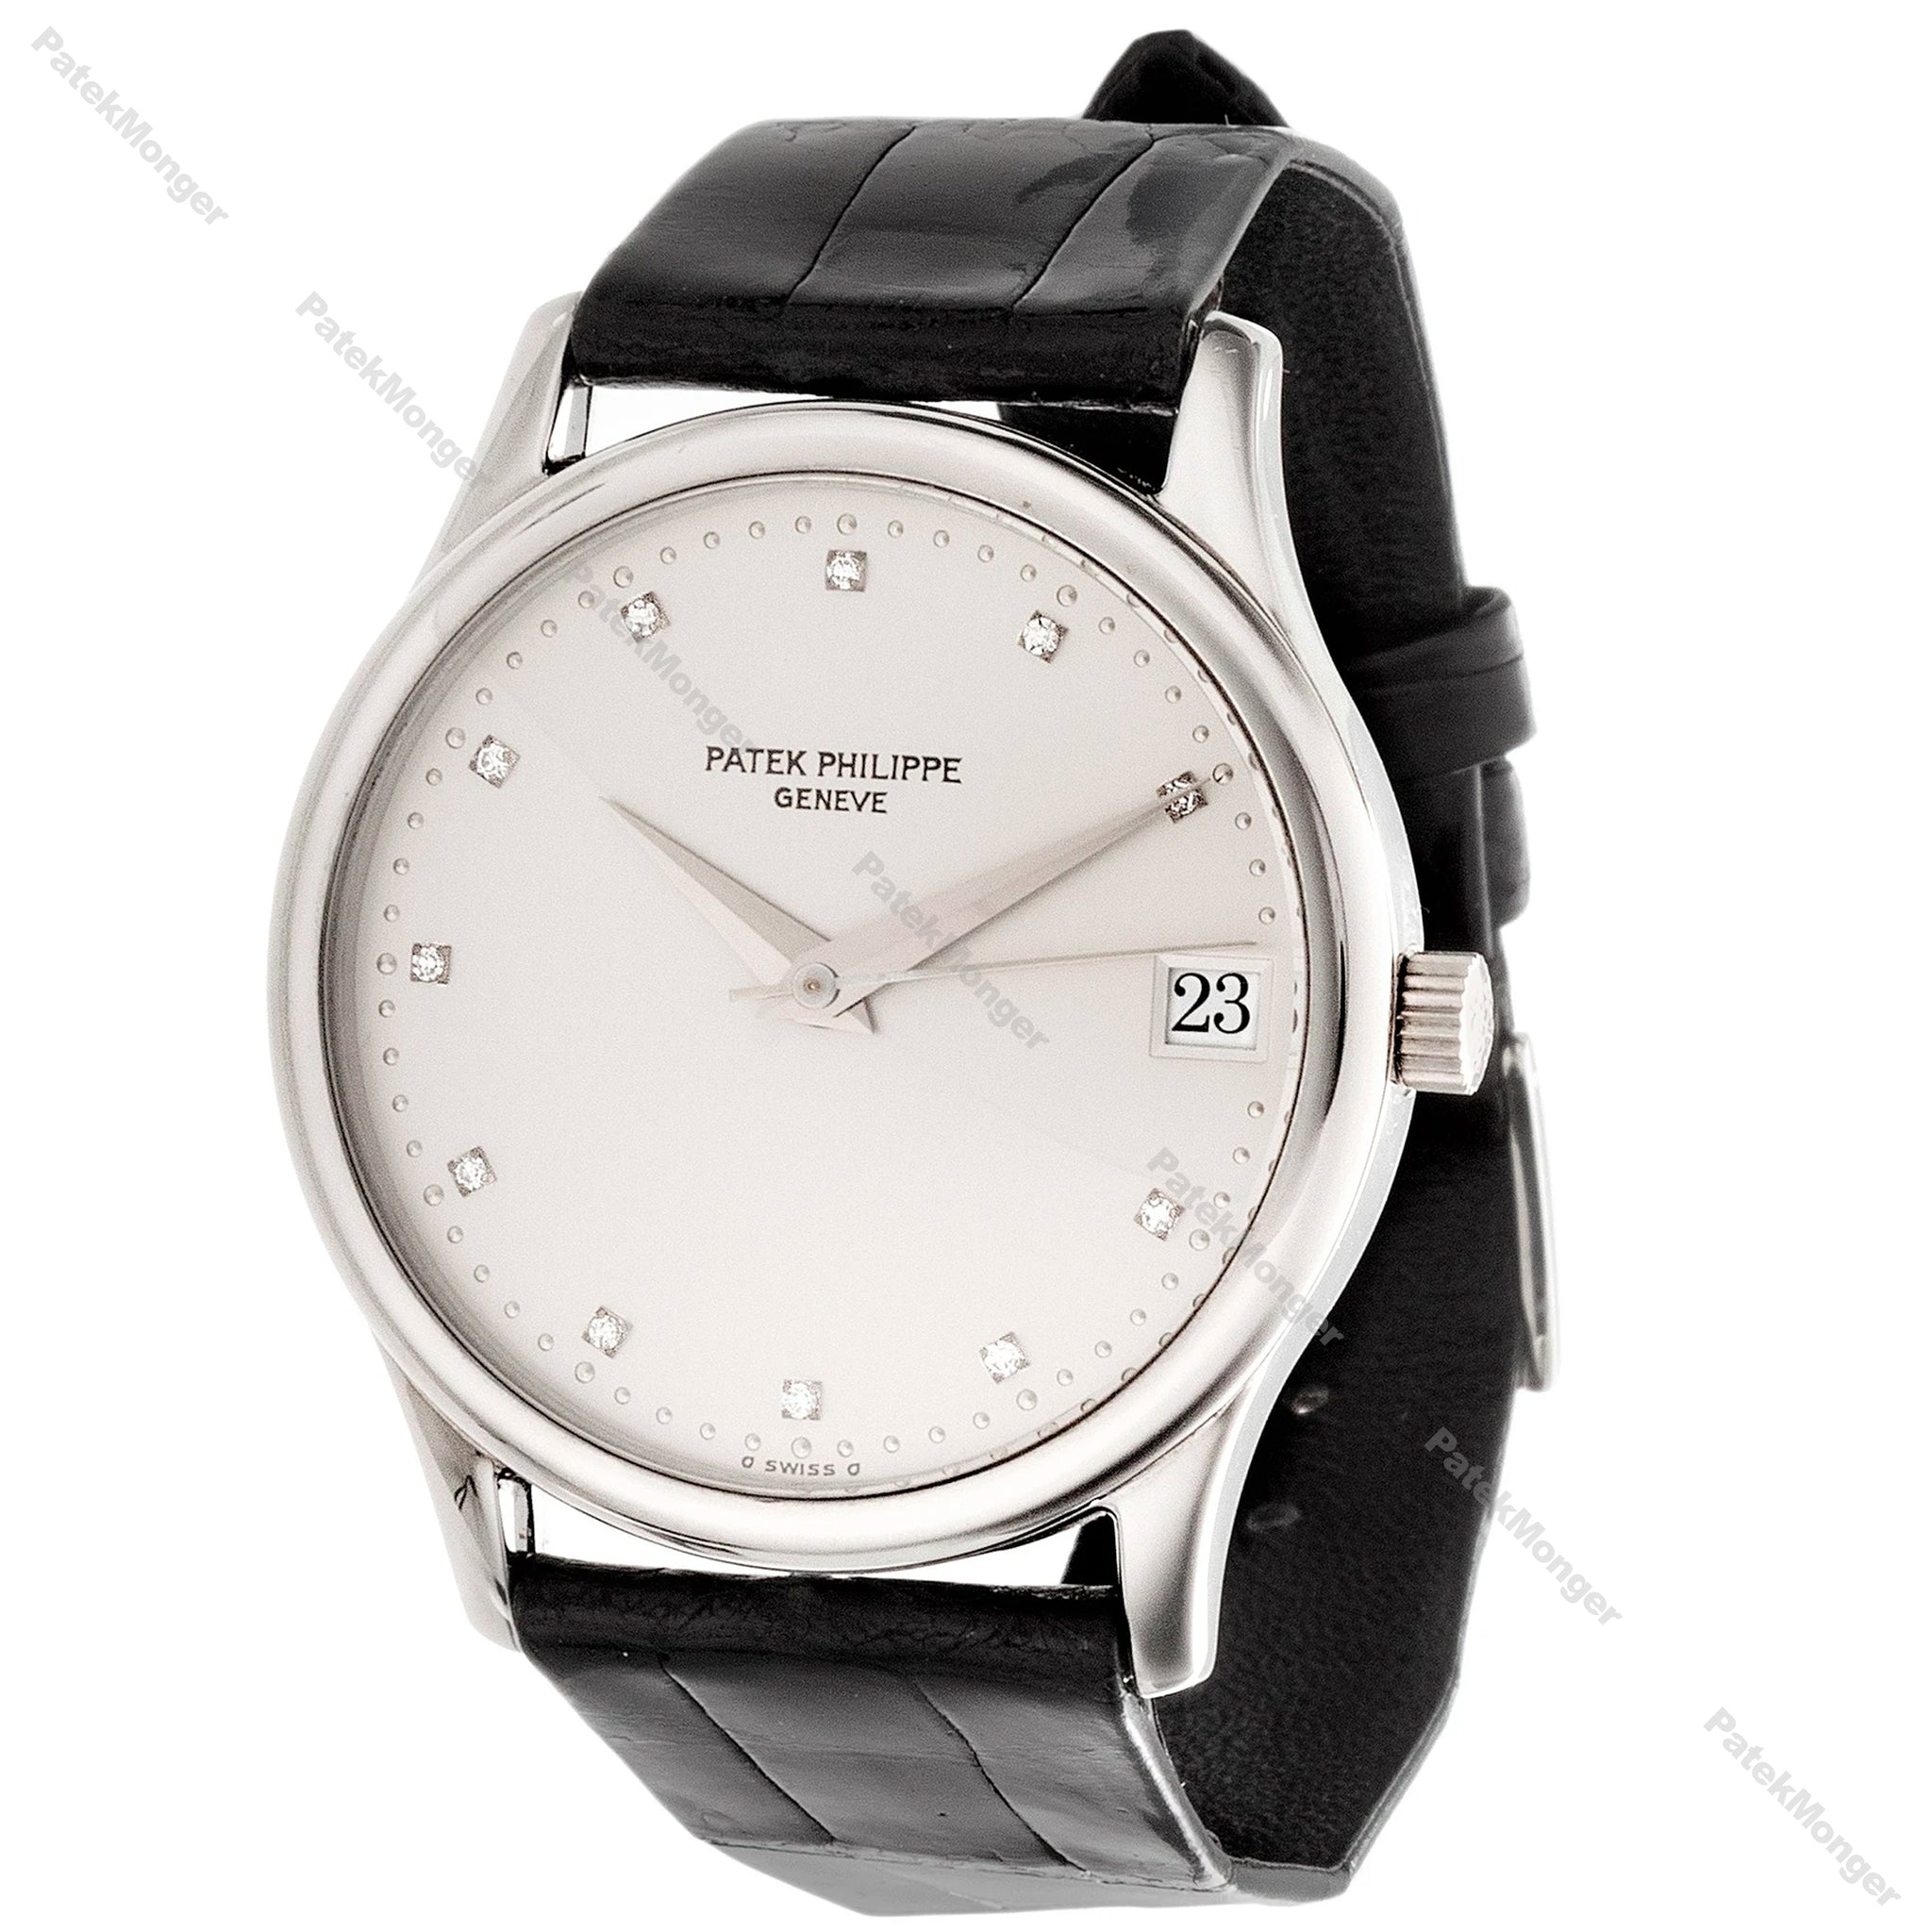 Patek Philippe 3998P Automatic Calatrava Diamond Dial Watch